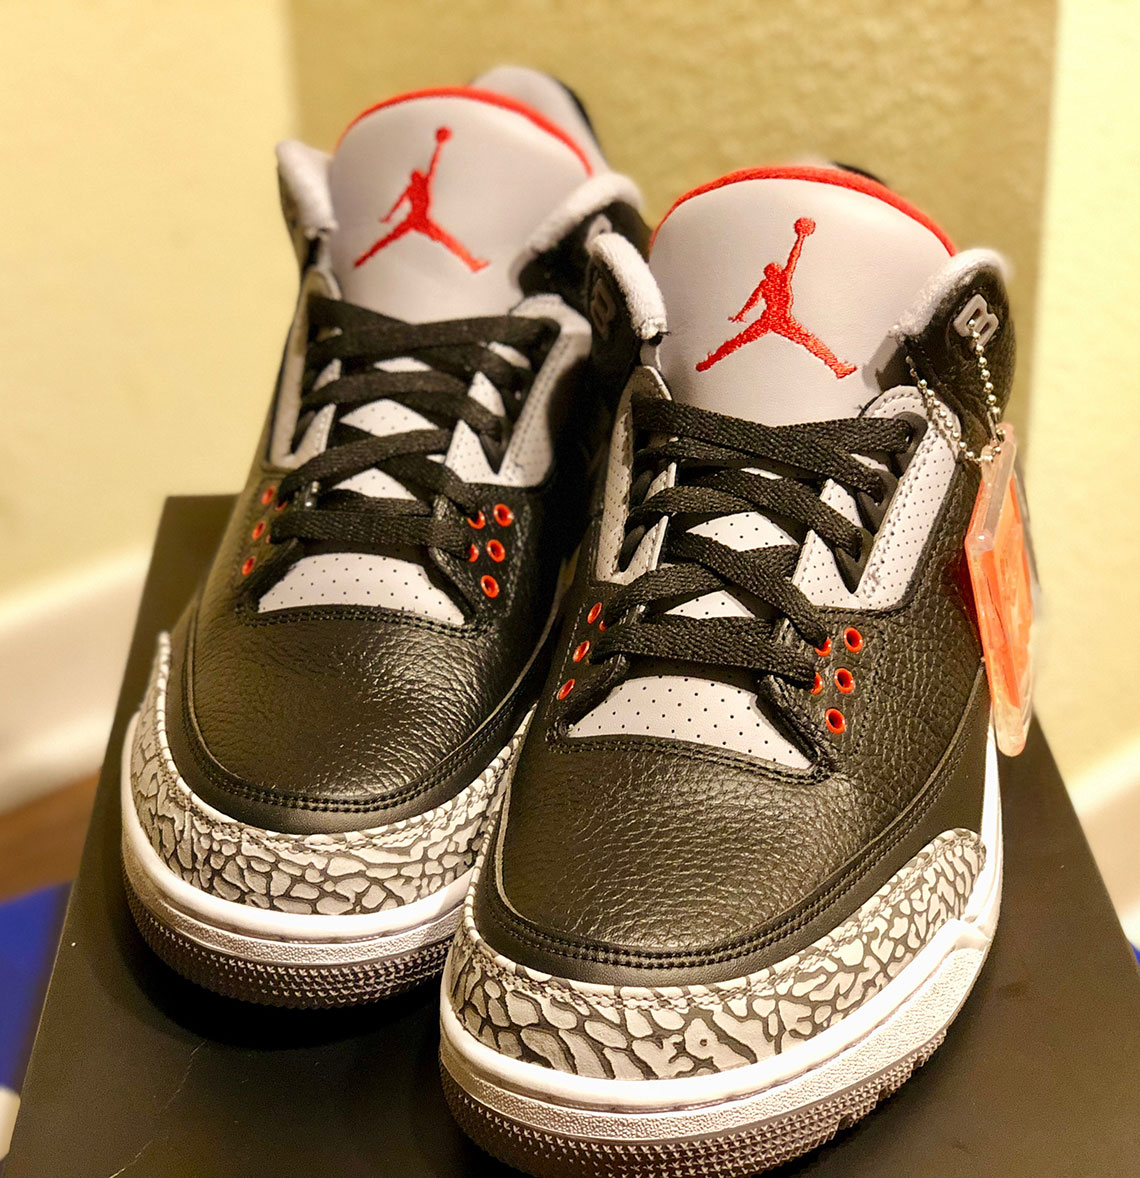 save off 899d1 3831f Jordan 3 Black Cement February 2018 Release Date 854262-001 ...